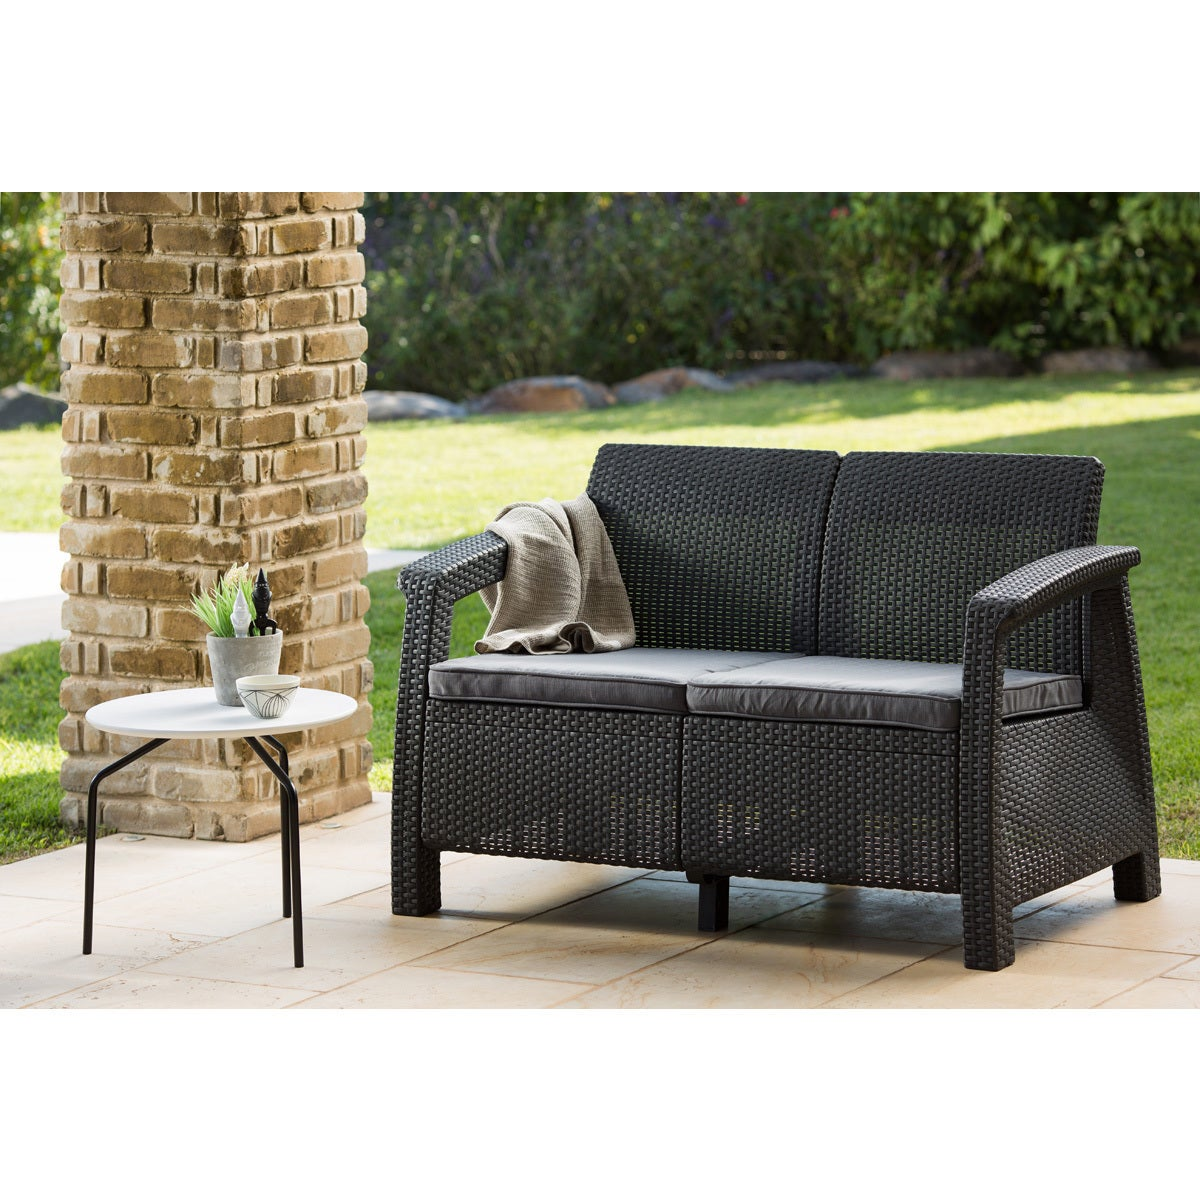 Keter Corfu Charcoal All Weather Garden Patio Love Seat With Cushions